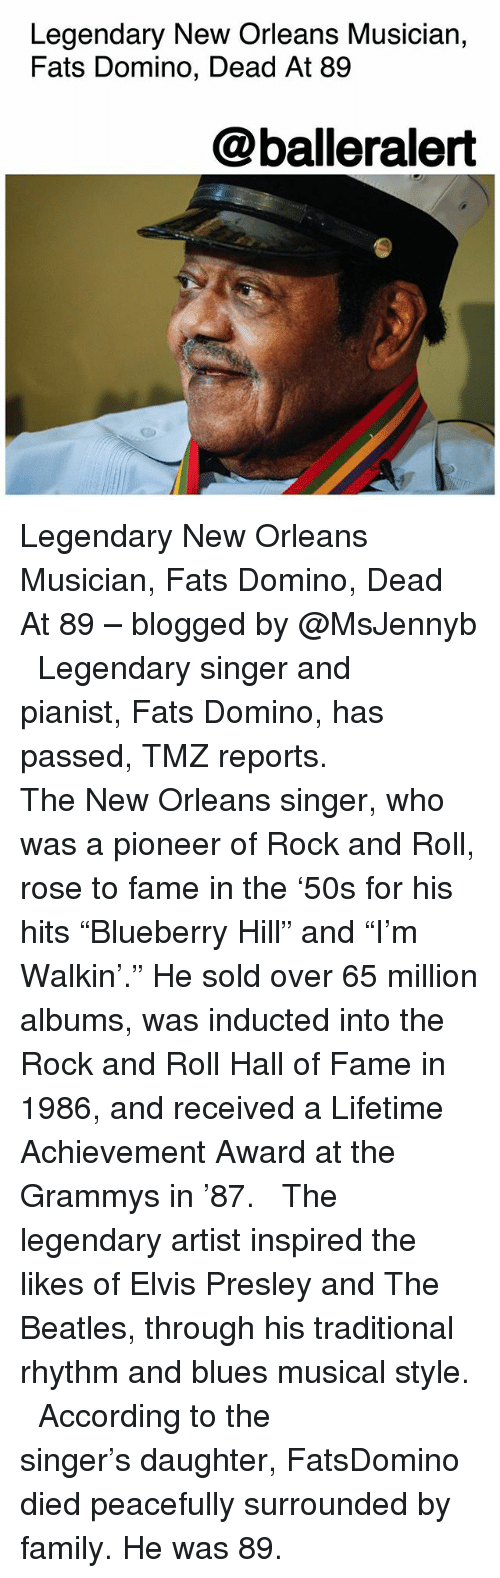 """Family, Grammys, and Memes: Legendary New Orleans Musician,  Fats Domino, Dead At 89  @balleralert Legendary New Orleans Musician, Fats Domino, Dead At 89 – blogged by @MsJennyb ⠀⠀⠀⠀⠀⠀⠀ ⠀⠀⠀⠀⠀⠀⠀ Legendary singer and pianist, Fats Domino, has passed, TMZ reports. ⠀⠀⠀⠀⠀⠀⠀ ⠀⠀⠀⠀⠀⠀⠀ The New Orleans singer, who was a pioneer of Rock and Roll, rose to fame in the '50s for his hits """"Blueberry Hill"""" and """"I'm Walkin'."""" He sold over 65 million albums, was inducted into the Rock and Roll Hall of Fame in 1986, and received a Lifetime Achievement Award at the Grammys in '87. ⠀⠀⠀⠀⠀⠀⠀ ⠀⠀⠀⠀⠀⠀⠀ The legendary artist inspired the likes of Elvis Presley and The Beatles, through his traditional rhythm and blues musical style. ⠀⠀⠀⠀⠀⠀⠀ ⠀⠀⠀⠀⠀⠀⠀ According to the singer's daughter, FatsDomino died peacefully surrounded by family. He was 89."""